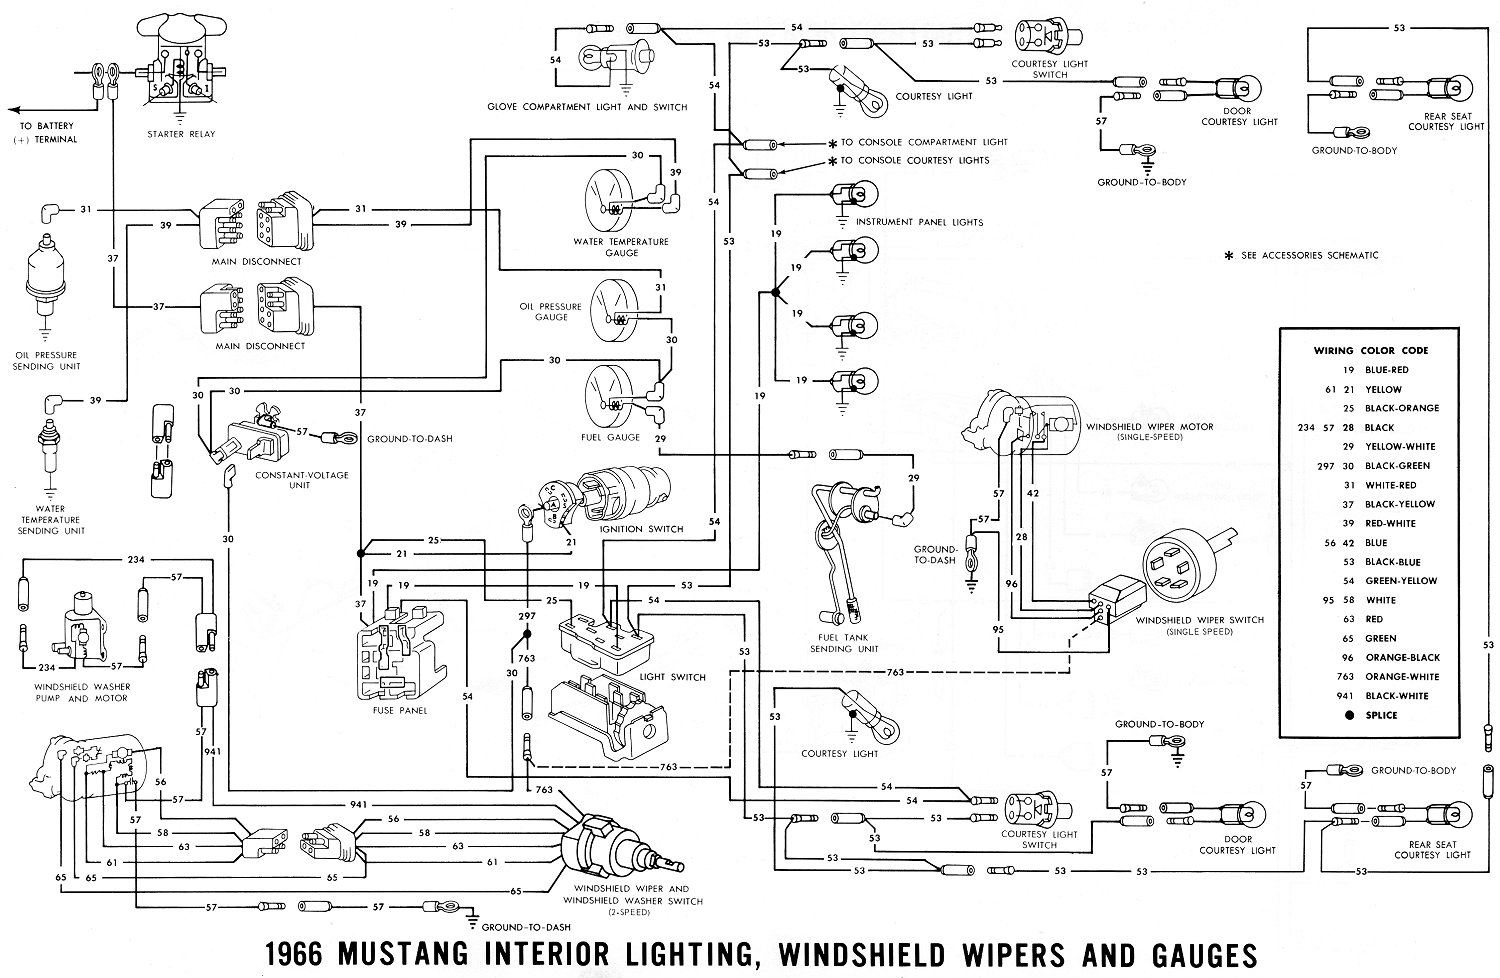 Wiring Diagram needed 4 headlight & Ign switchs